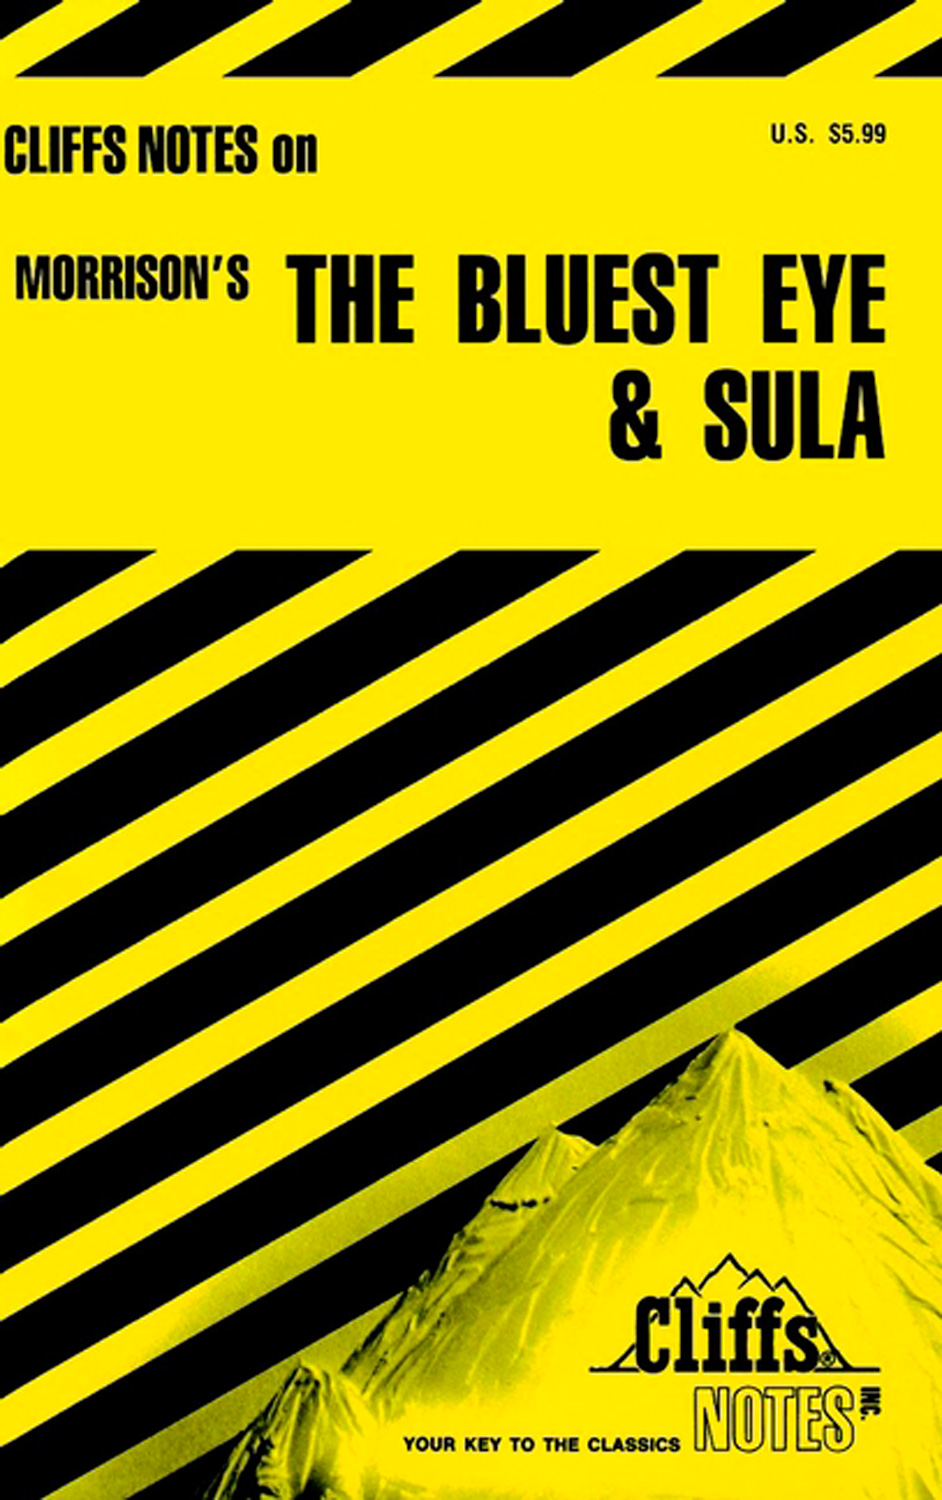 CliffsNotes on Morrison's The Bluest Eye & Sula-9780822002512